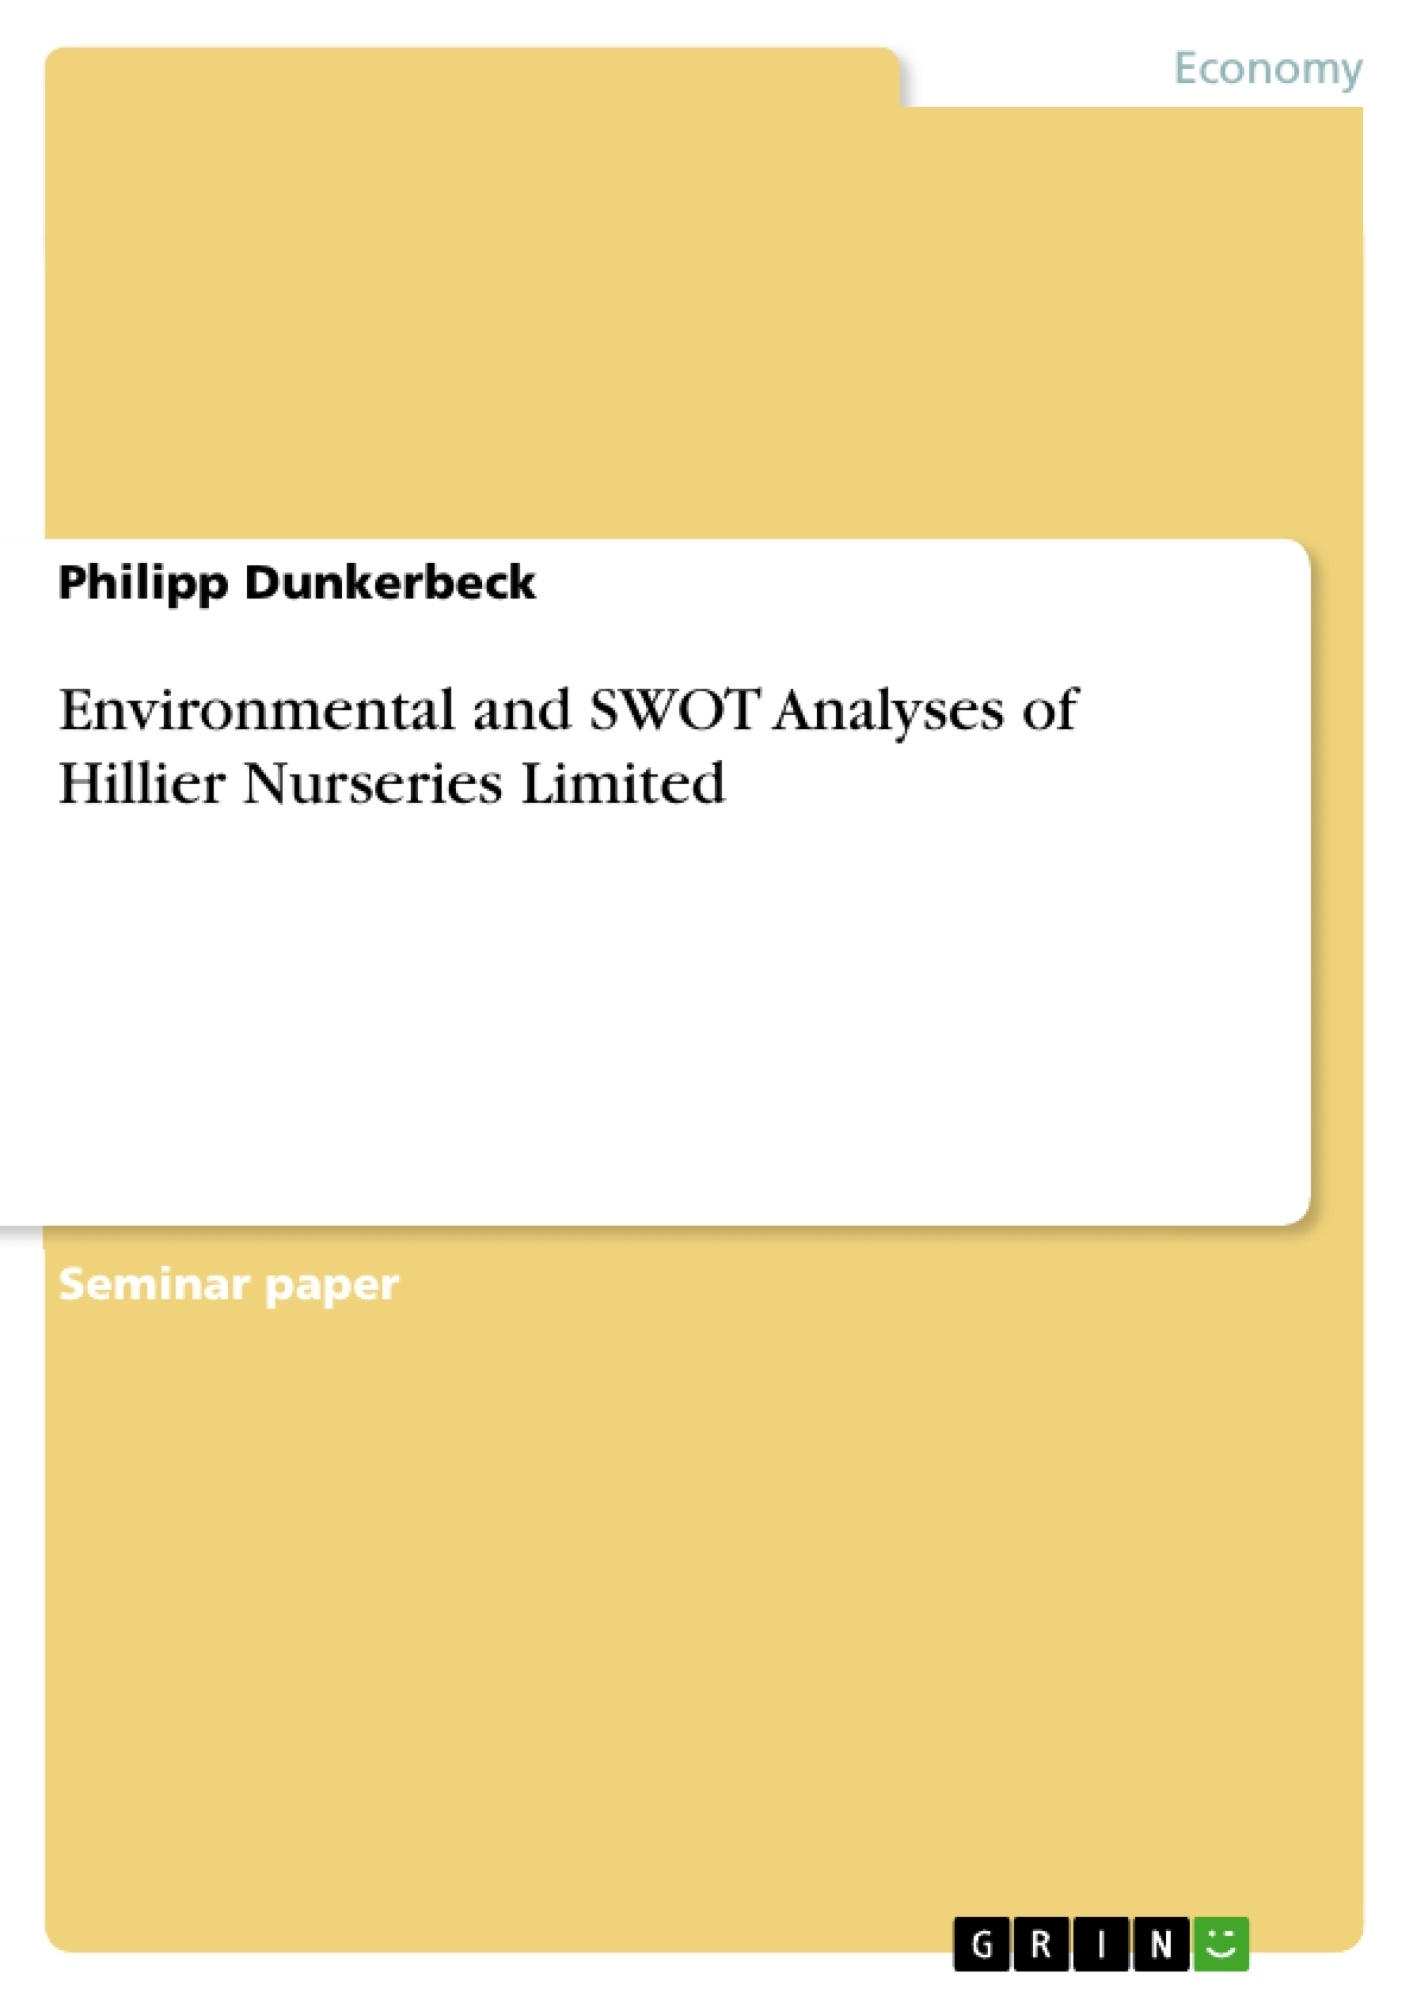 Title: Environmental and SWOT Analyses of Hillier Nurseries Limited